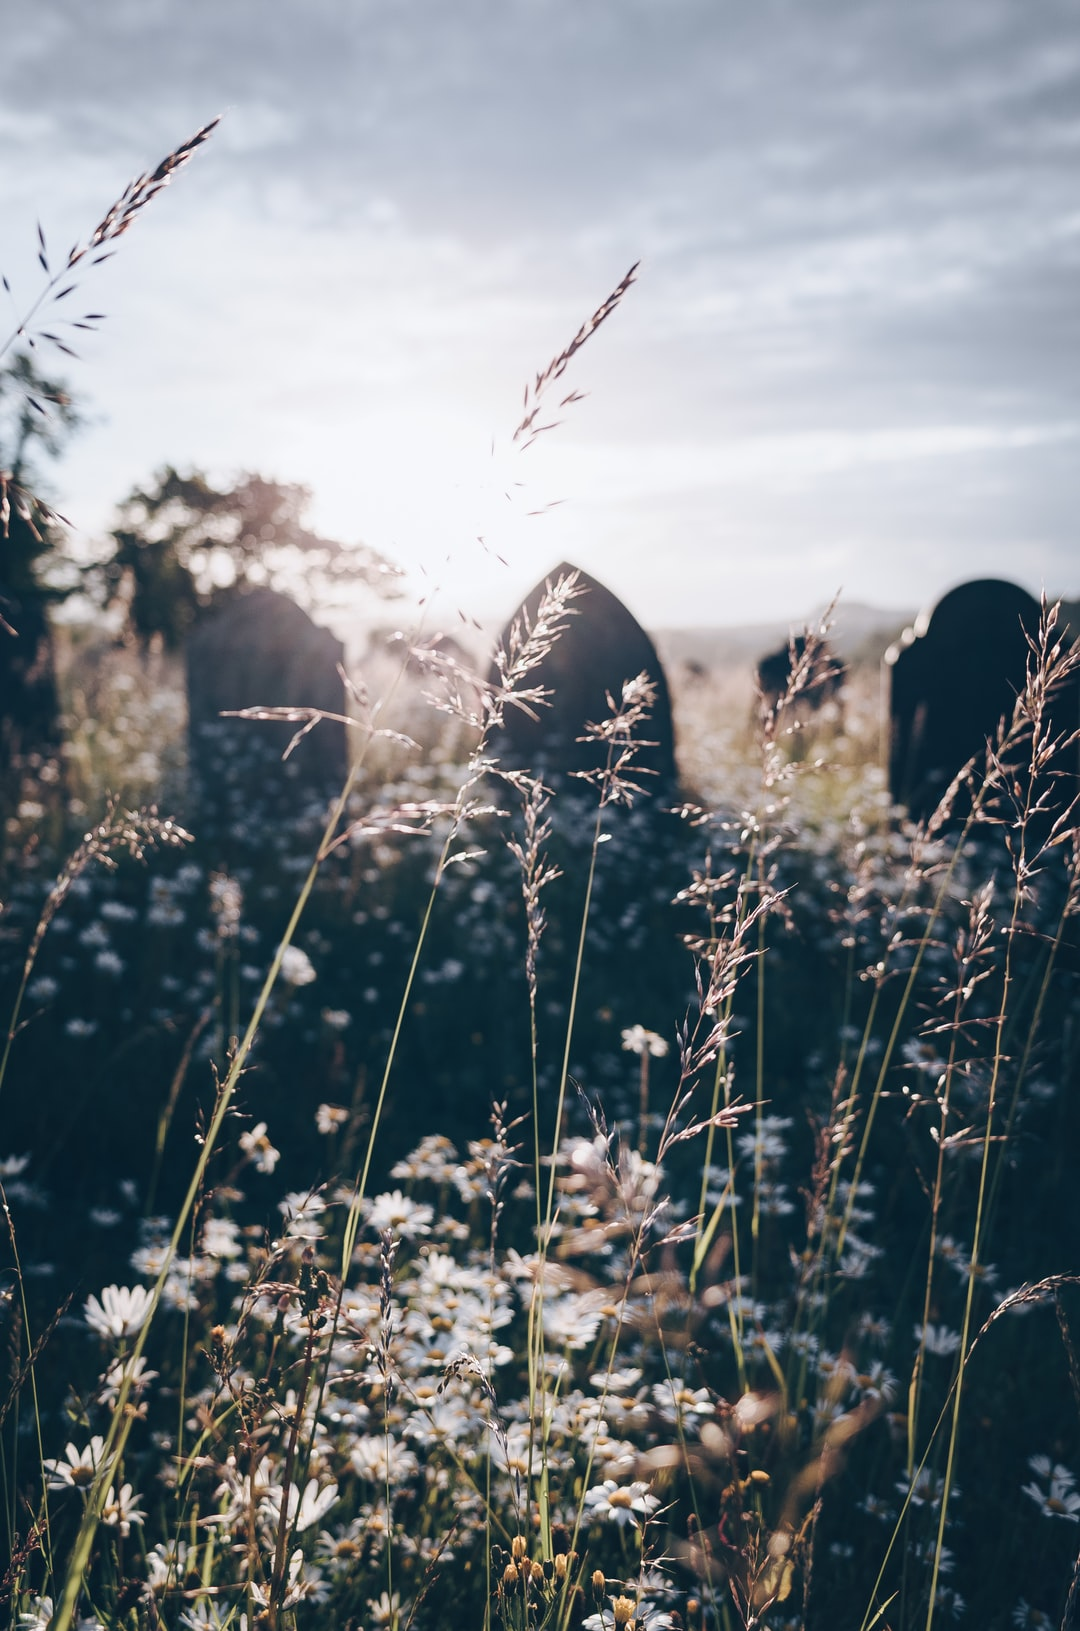 Gravestones surrounded by wildflowers and grass, glowing in the morning sunlight